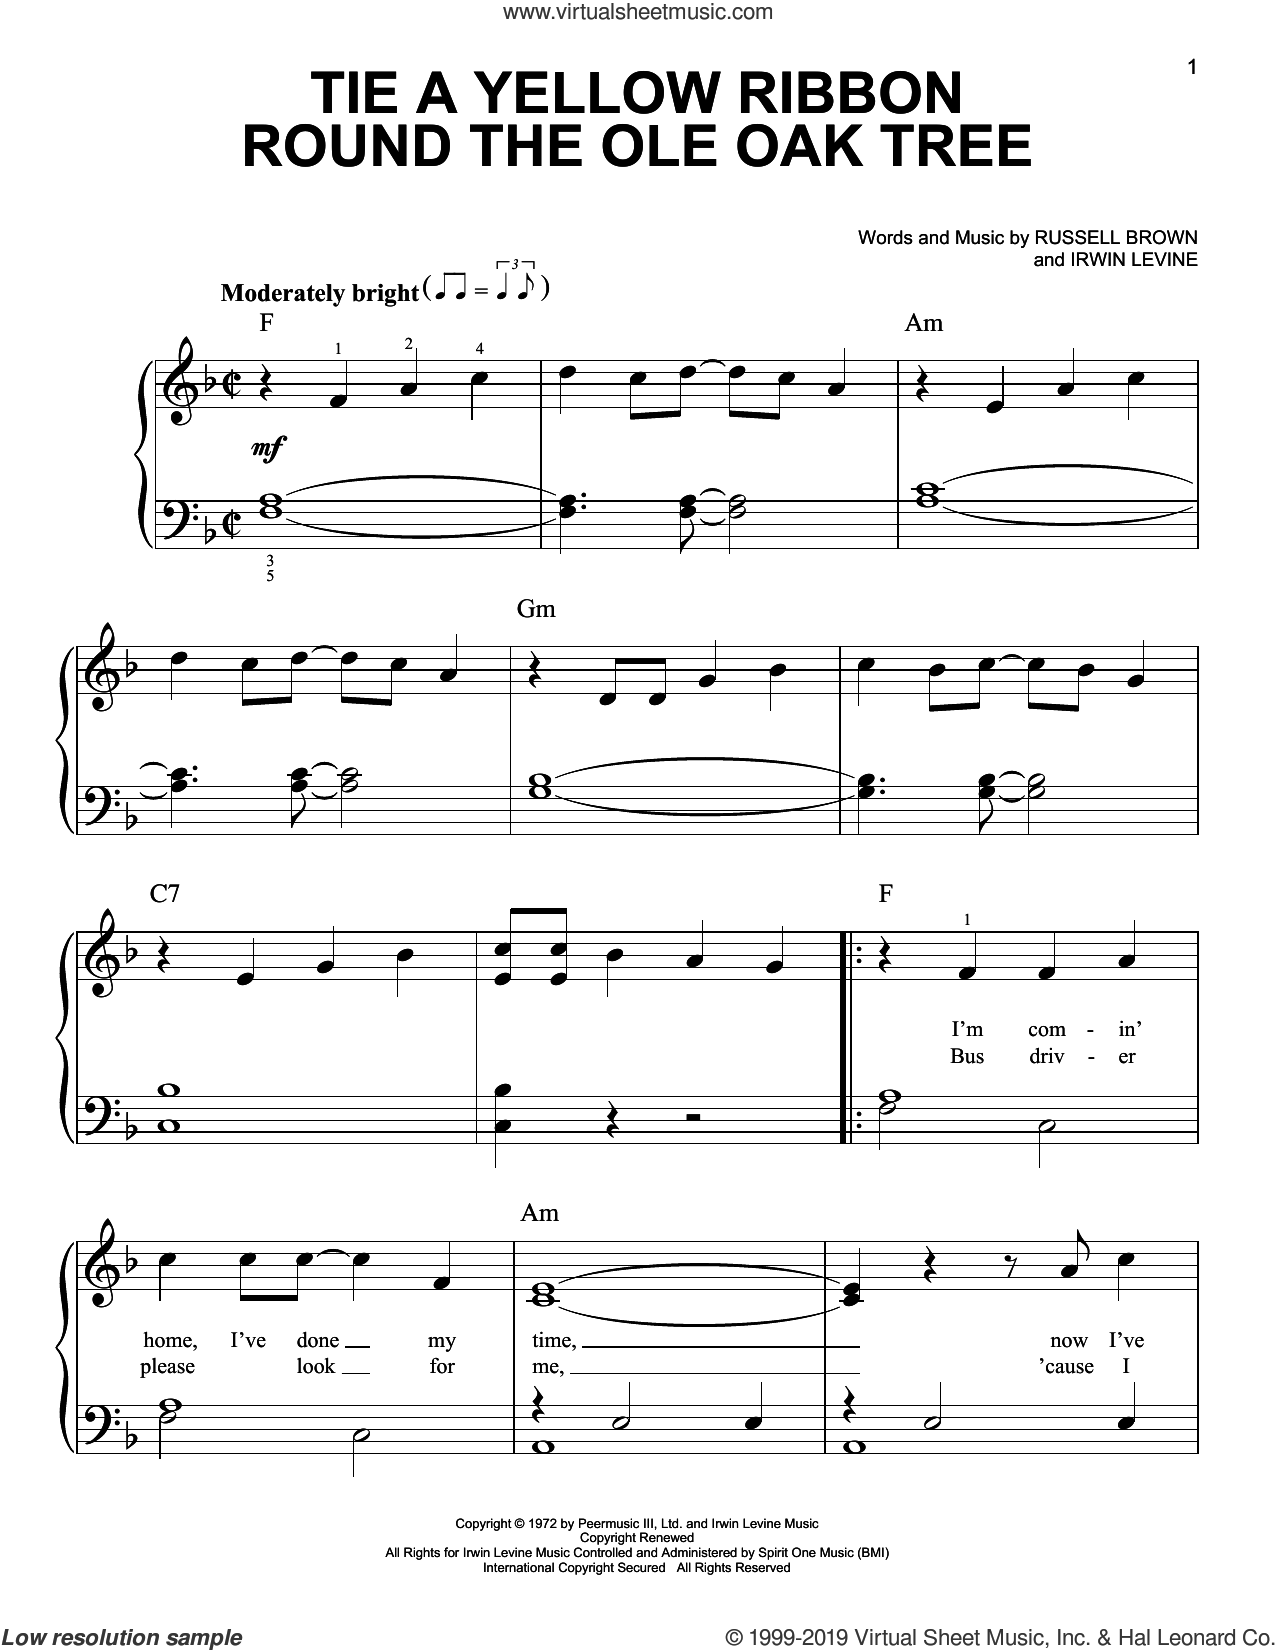 Tie A Yellow Ribbon Round The Ole Oak Tree sheet music for piano solo by Dawn featuring Tony Orlando, Tony Orlando and Dawn, Irwin Levine and L. Russell Brown, easy skill level